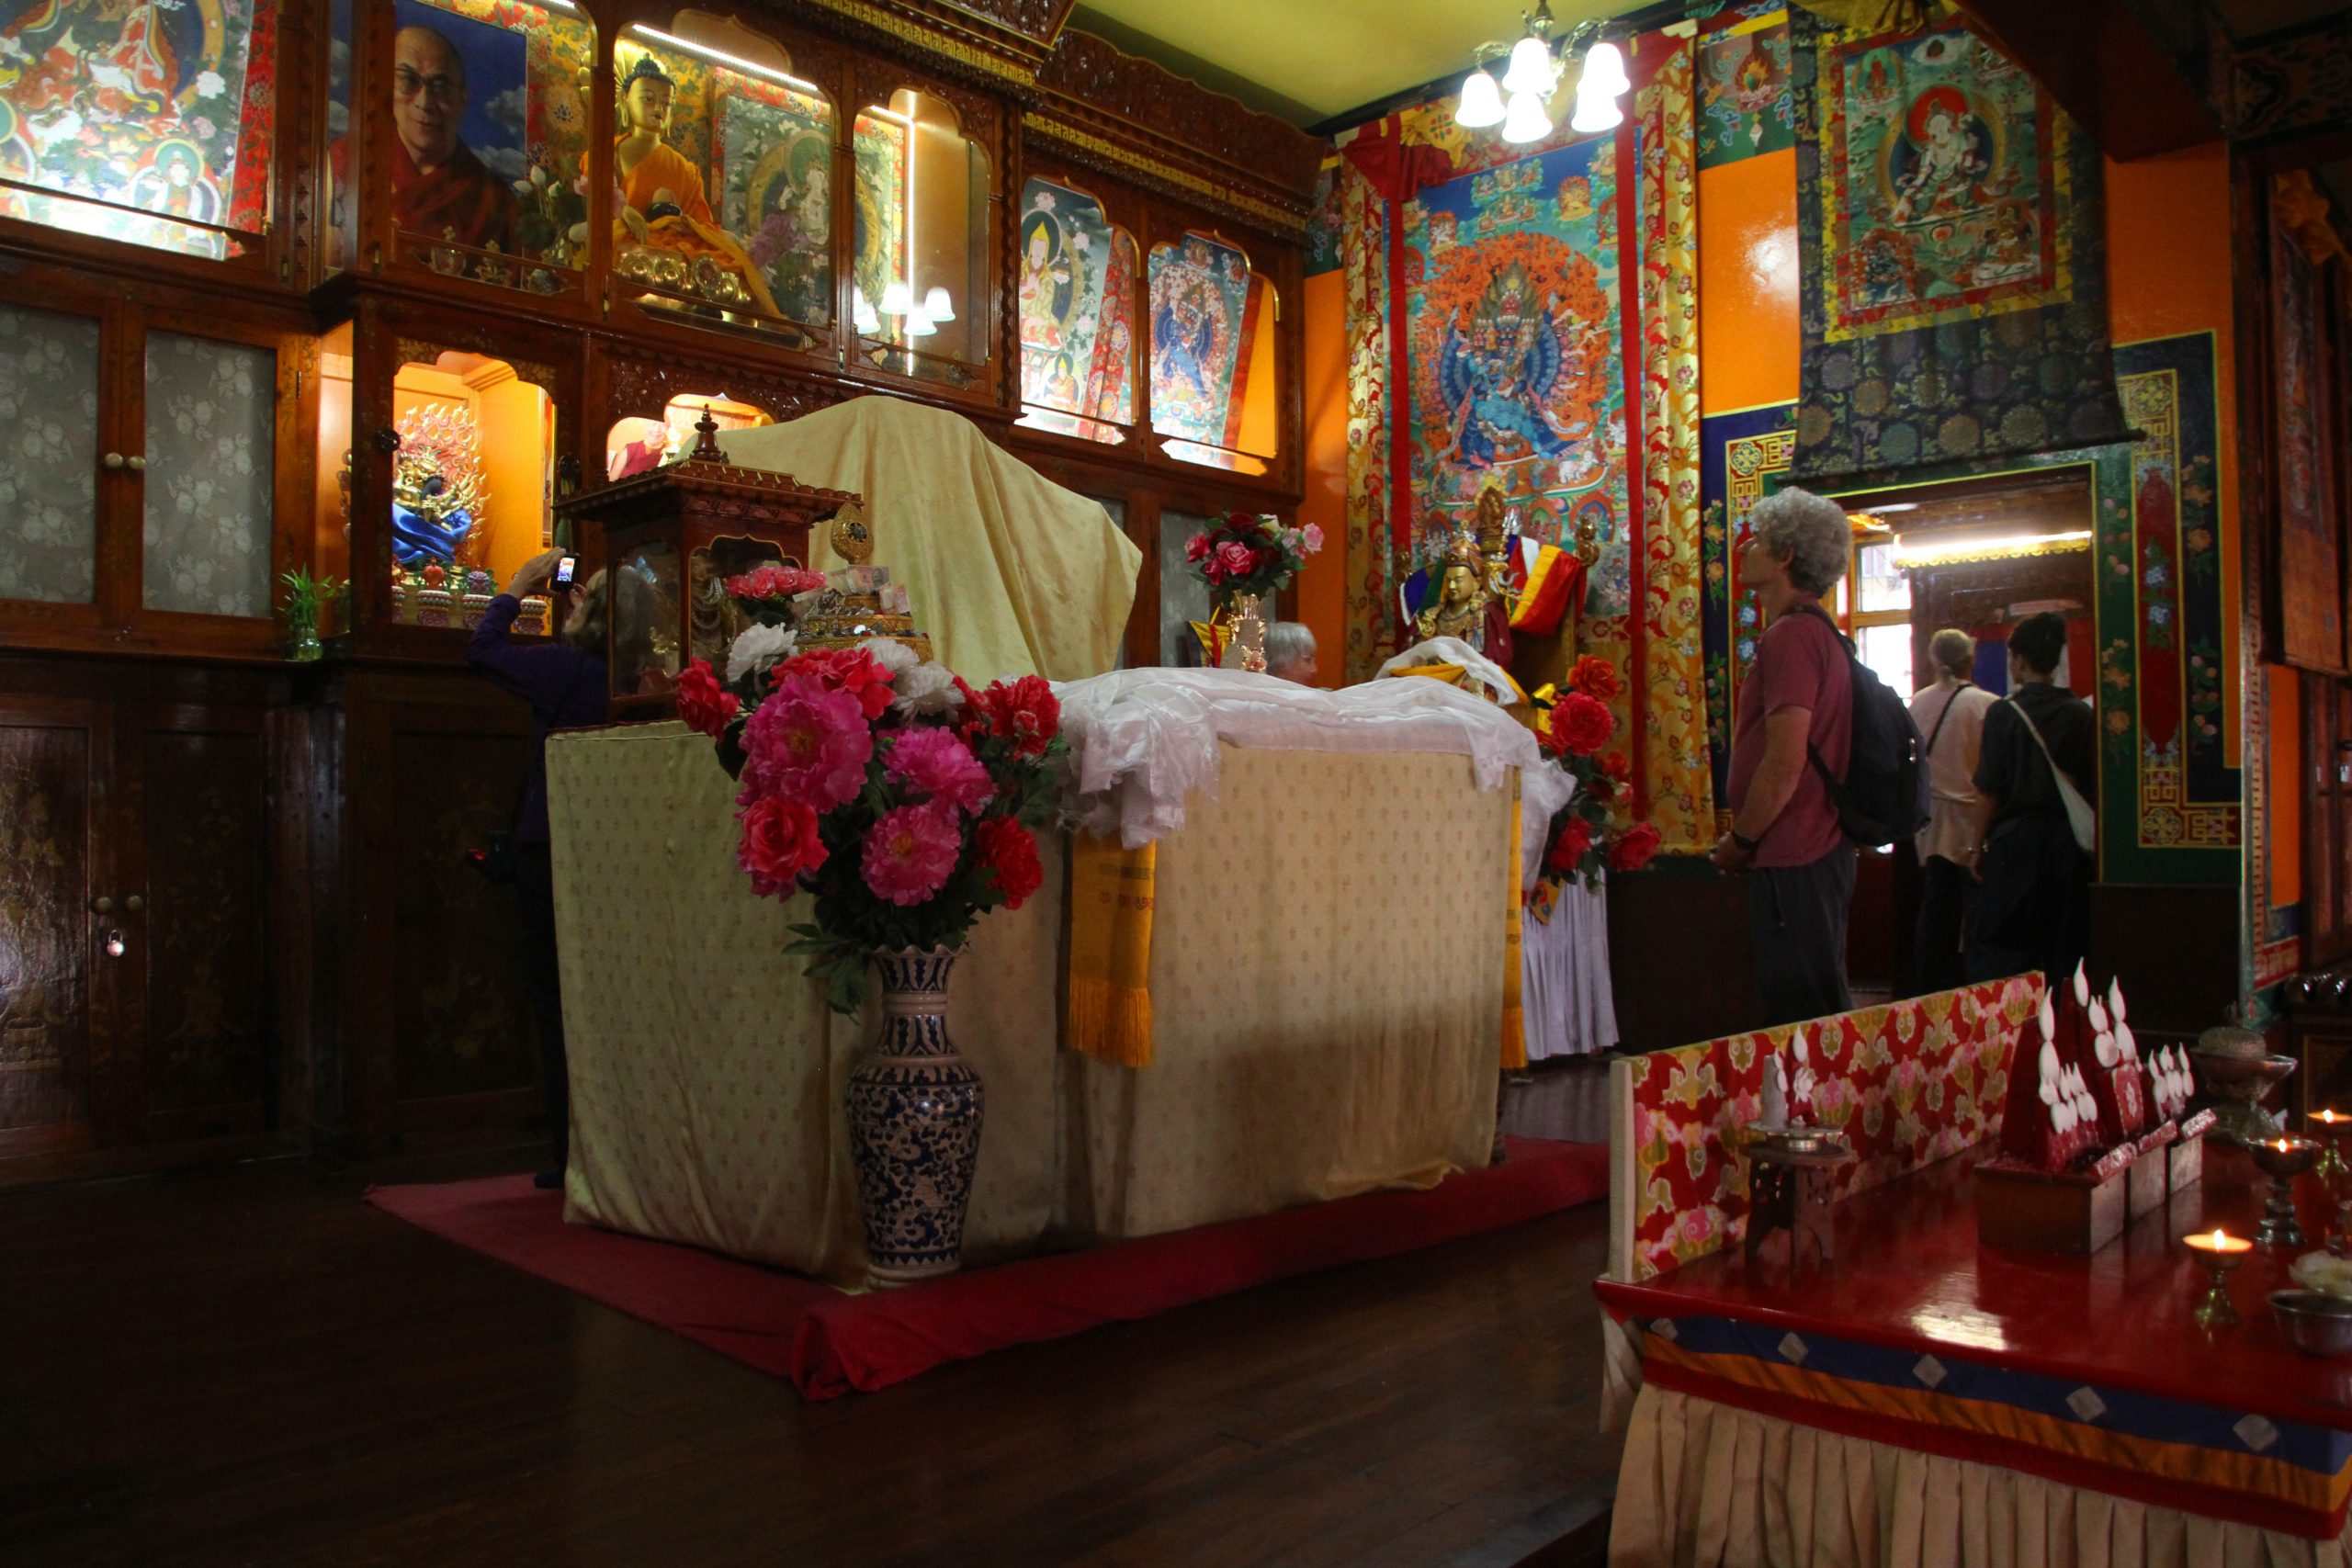 Must-Visit Place in Dharamshala and McLeodganj - Nechung Monastery